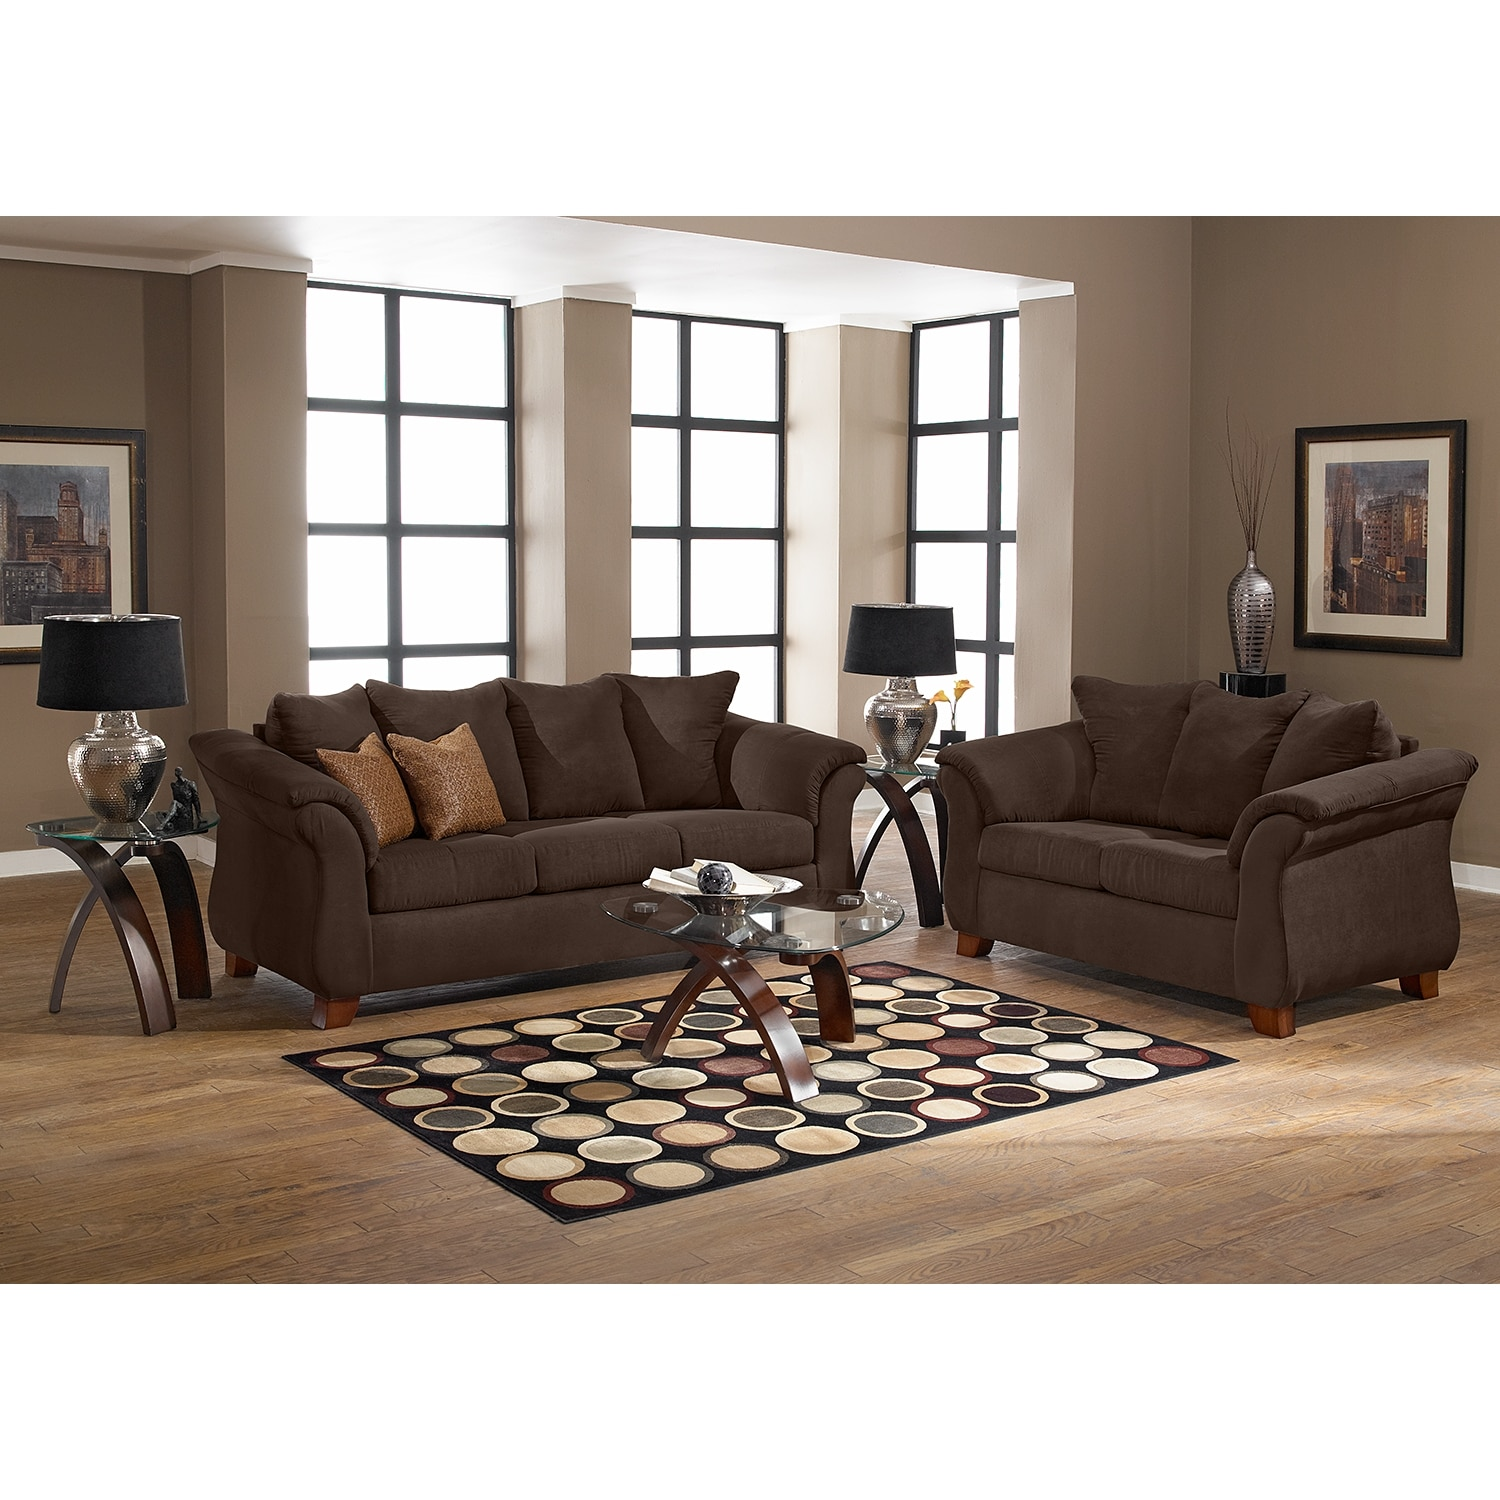 chocolate brown sofa living room | american hwy